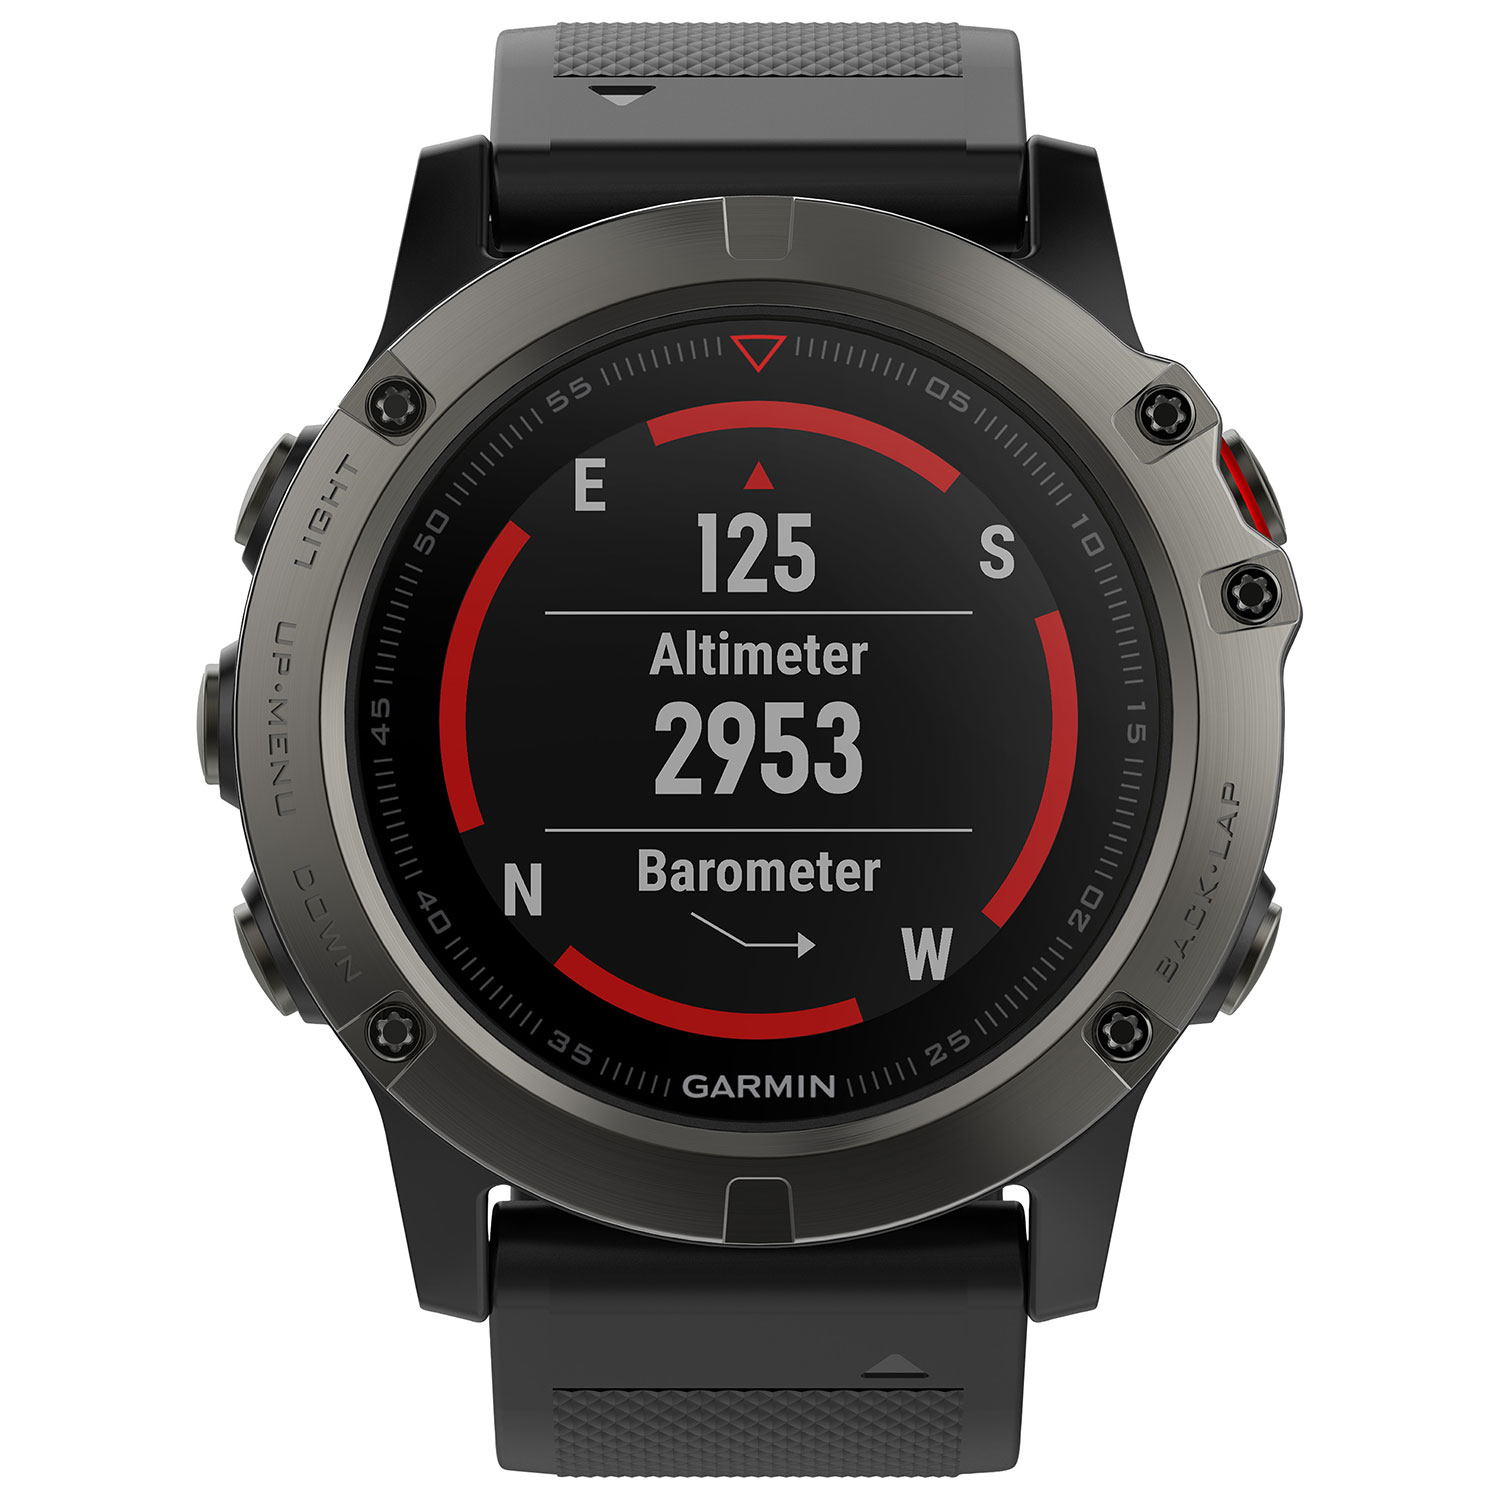 running c fitness training products gps navigation watches en run and electronics